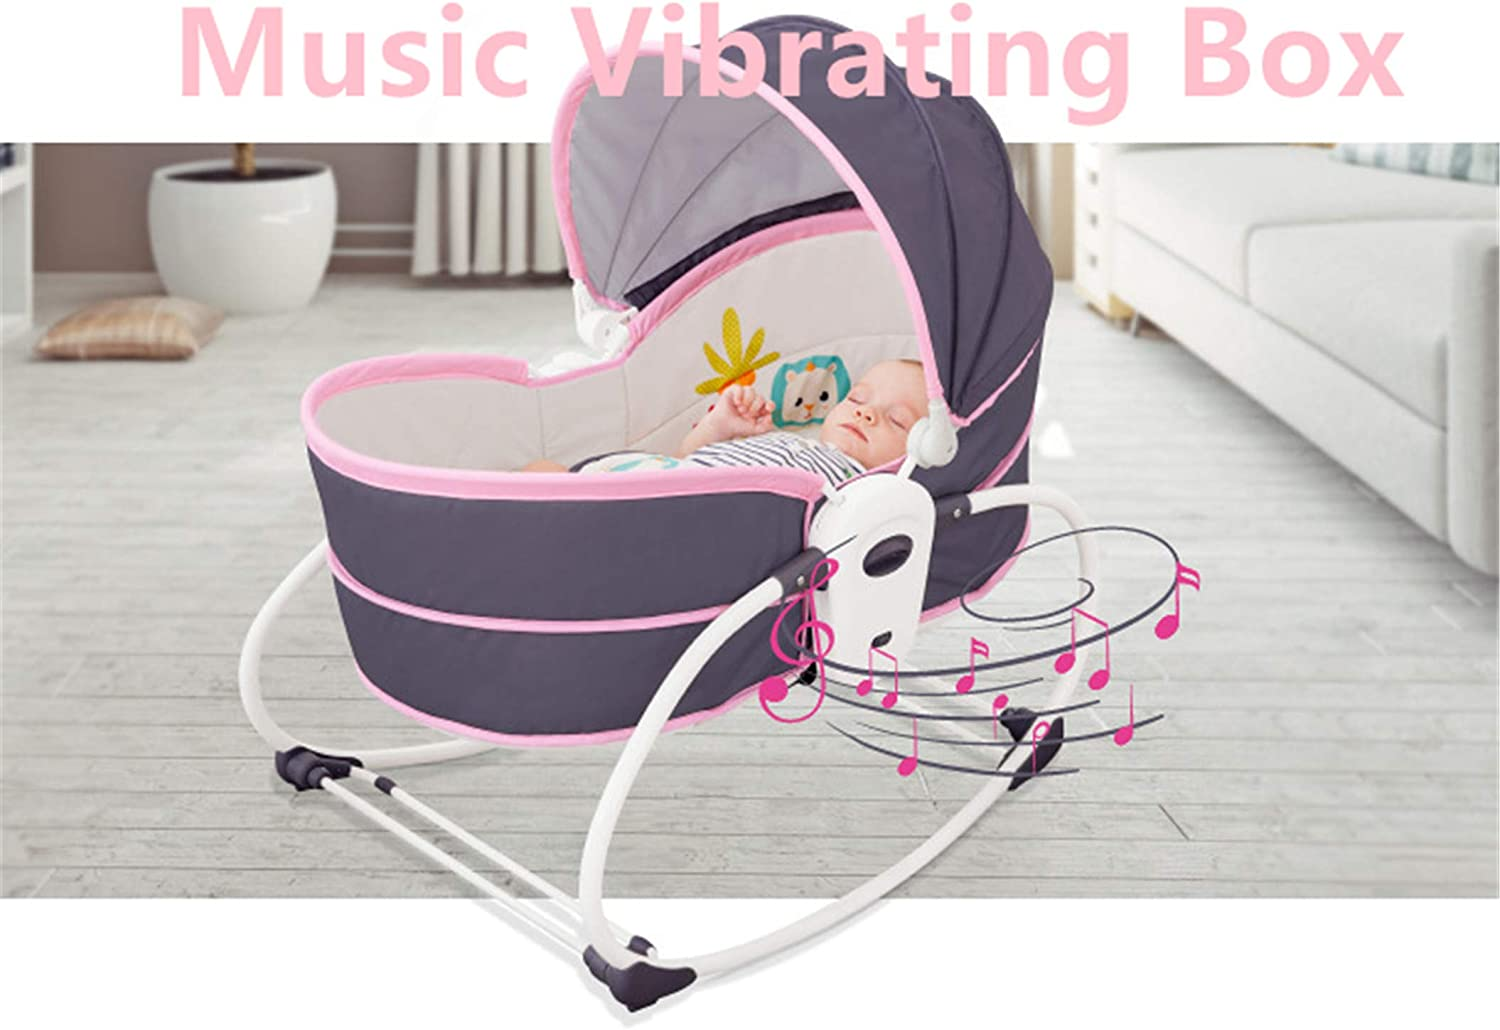 5-in-1 Baby Rocking Bassinet,Adjustable and Detachable Canopy with Music and Toys,Rocking Infant Crib Sleeping Chair for Travel Blue